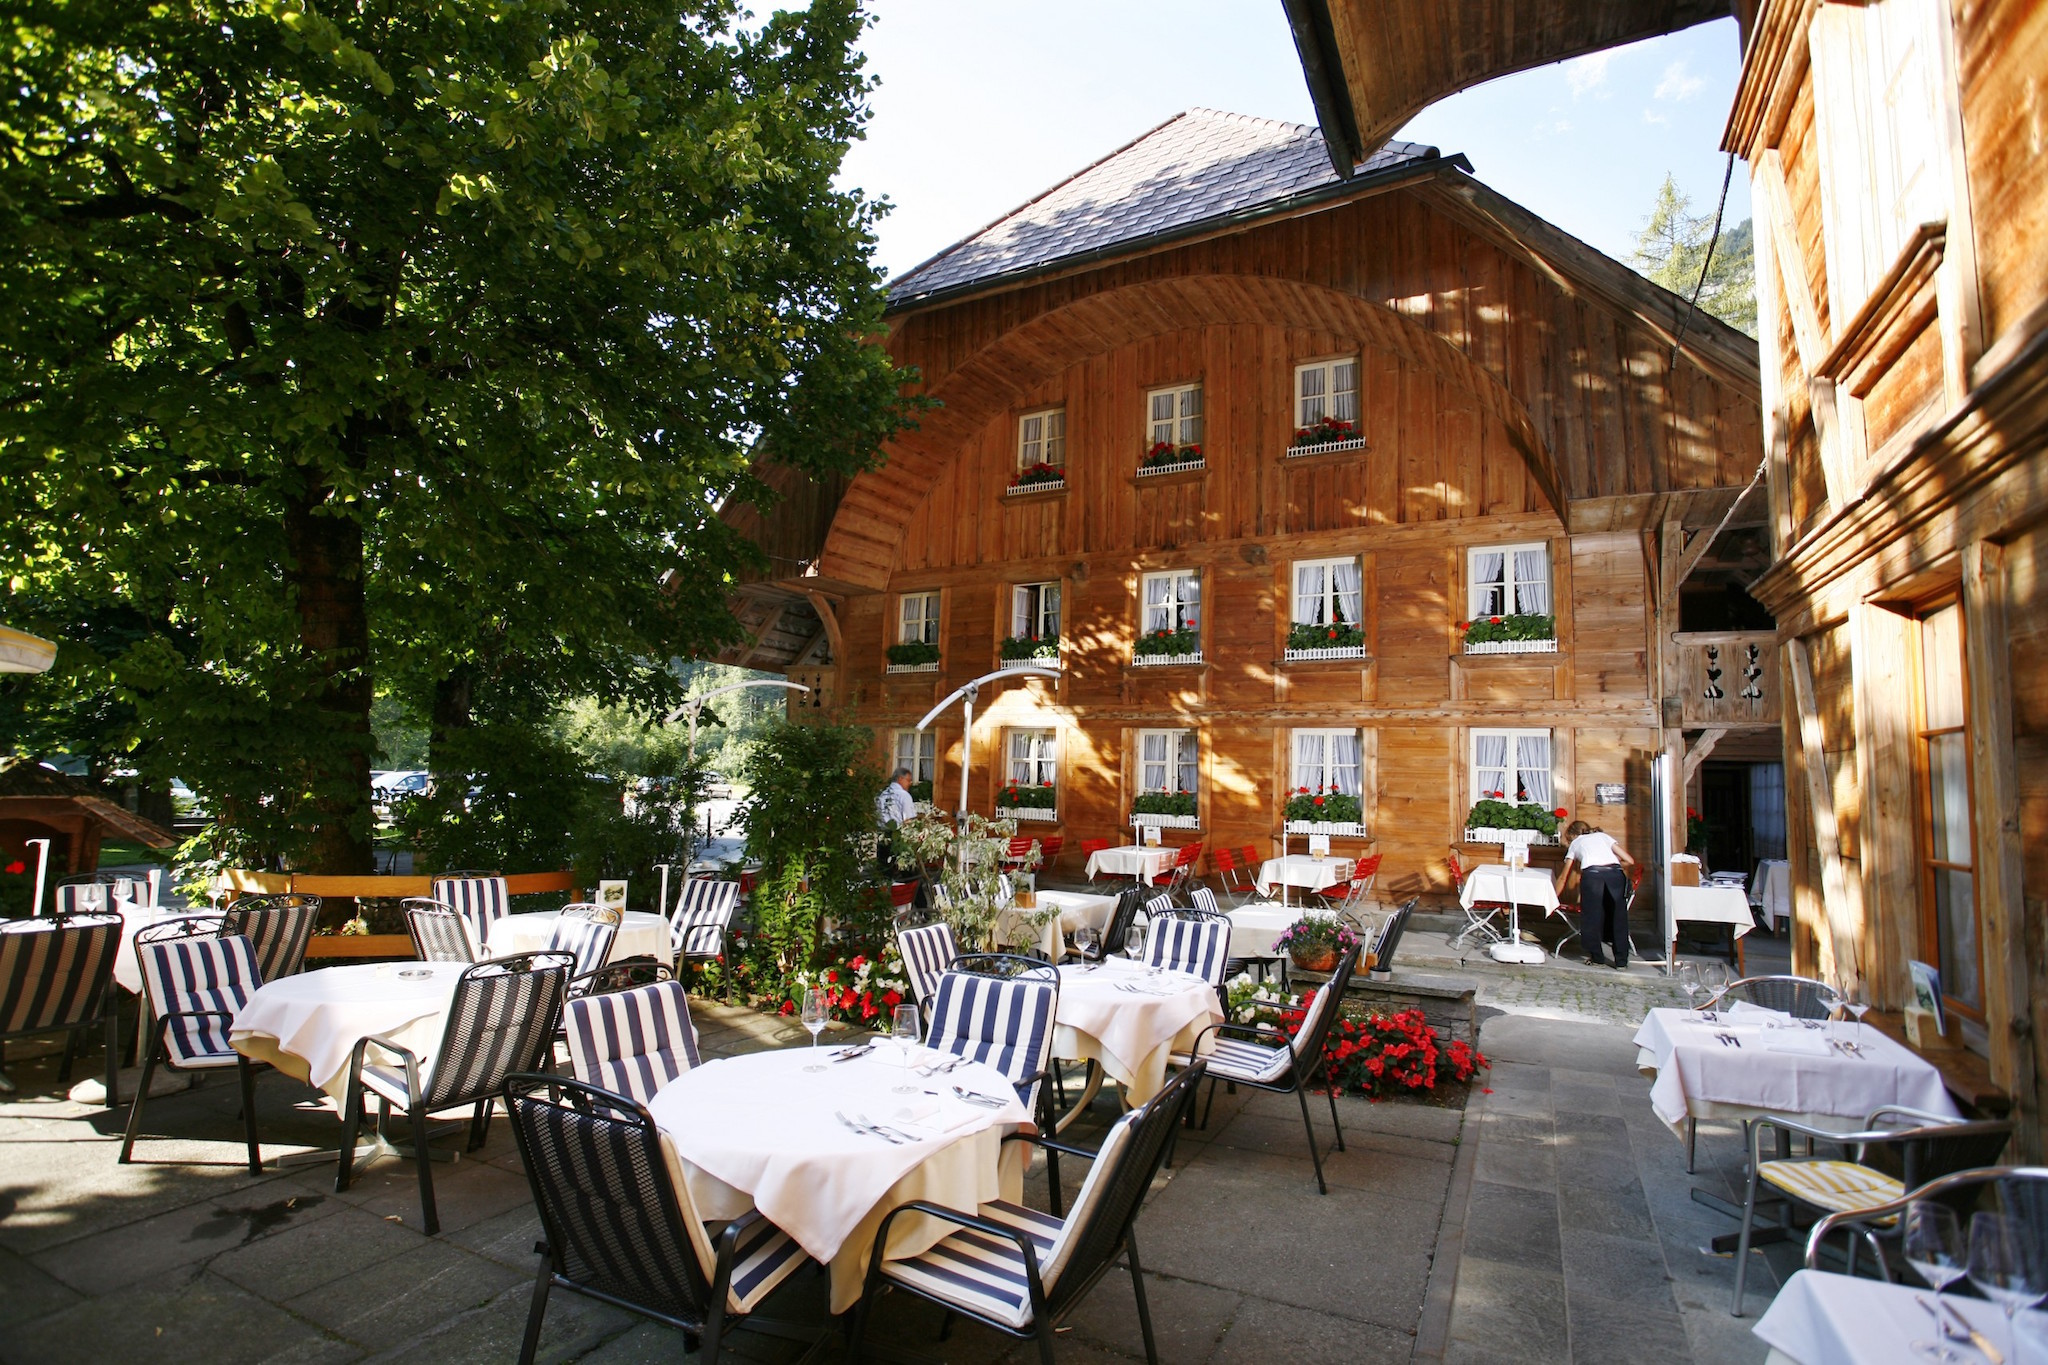 Hotel Landgasthof Kemmeriboden Bad, for Swiss staycation campaign